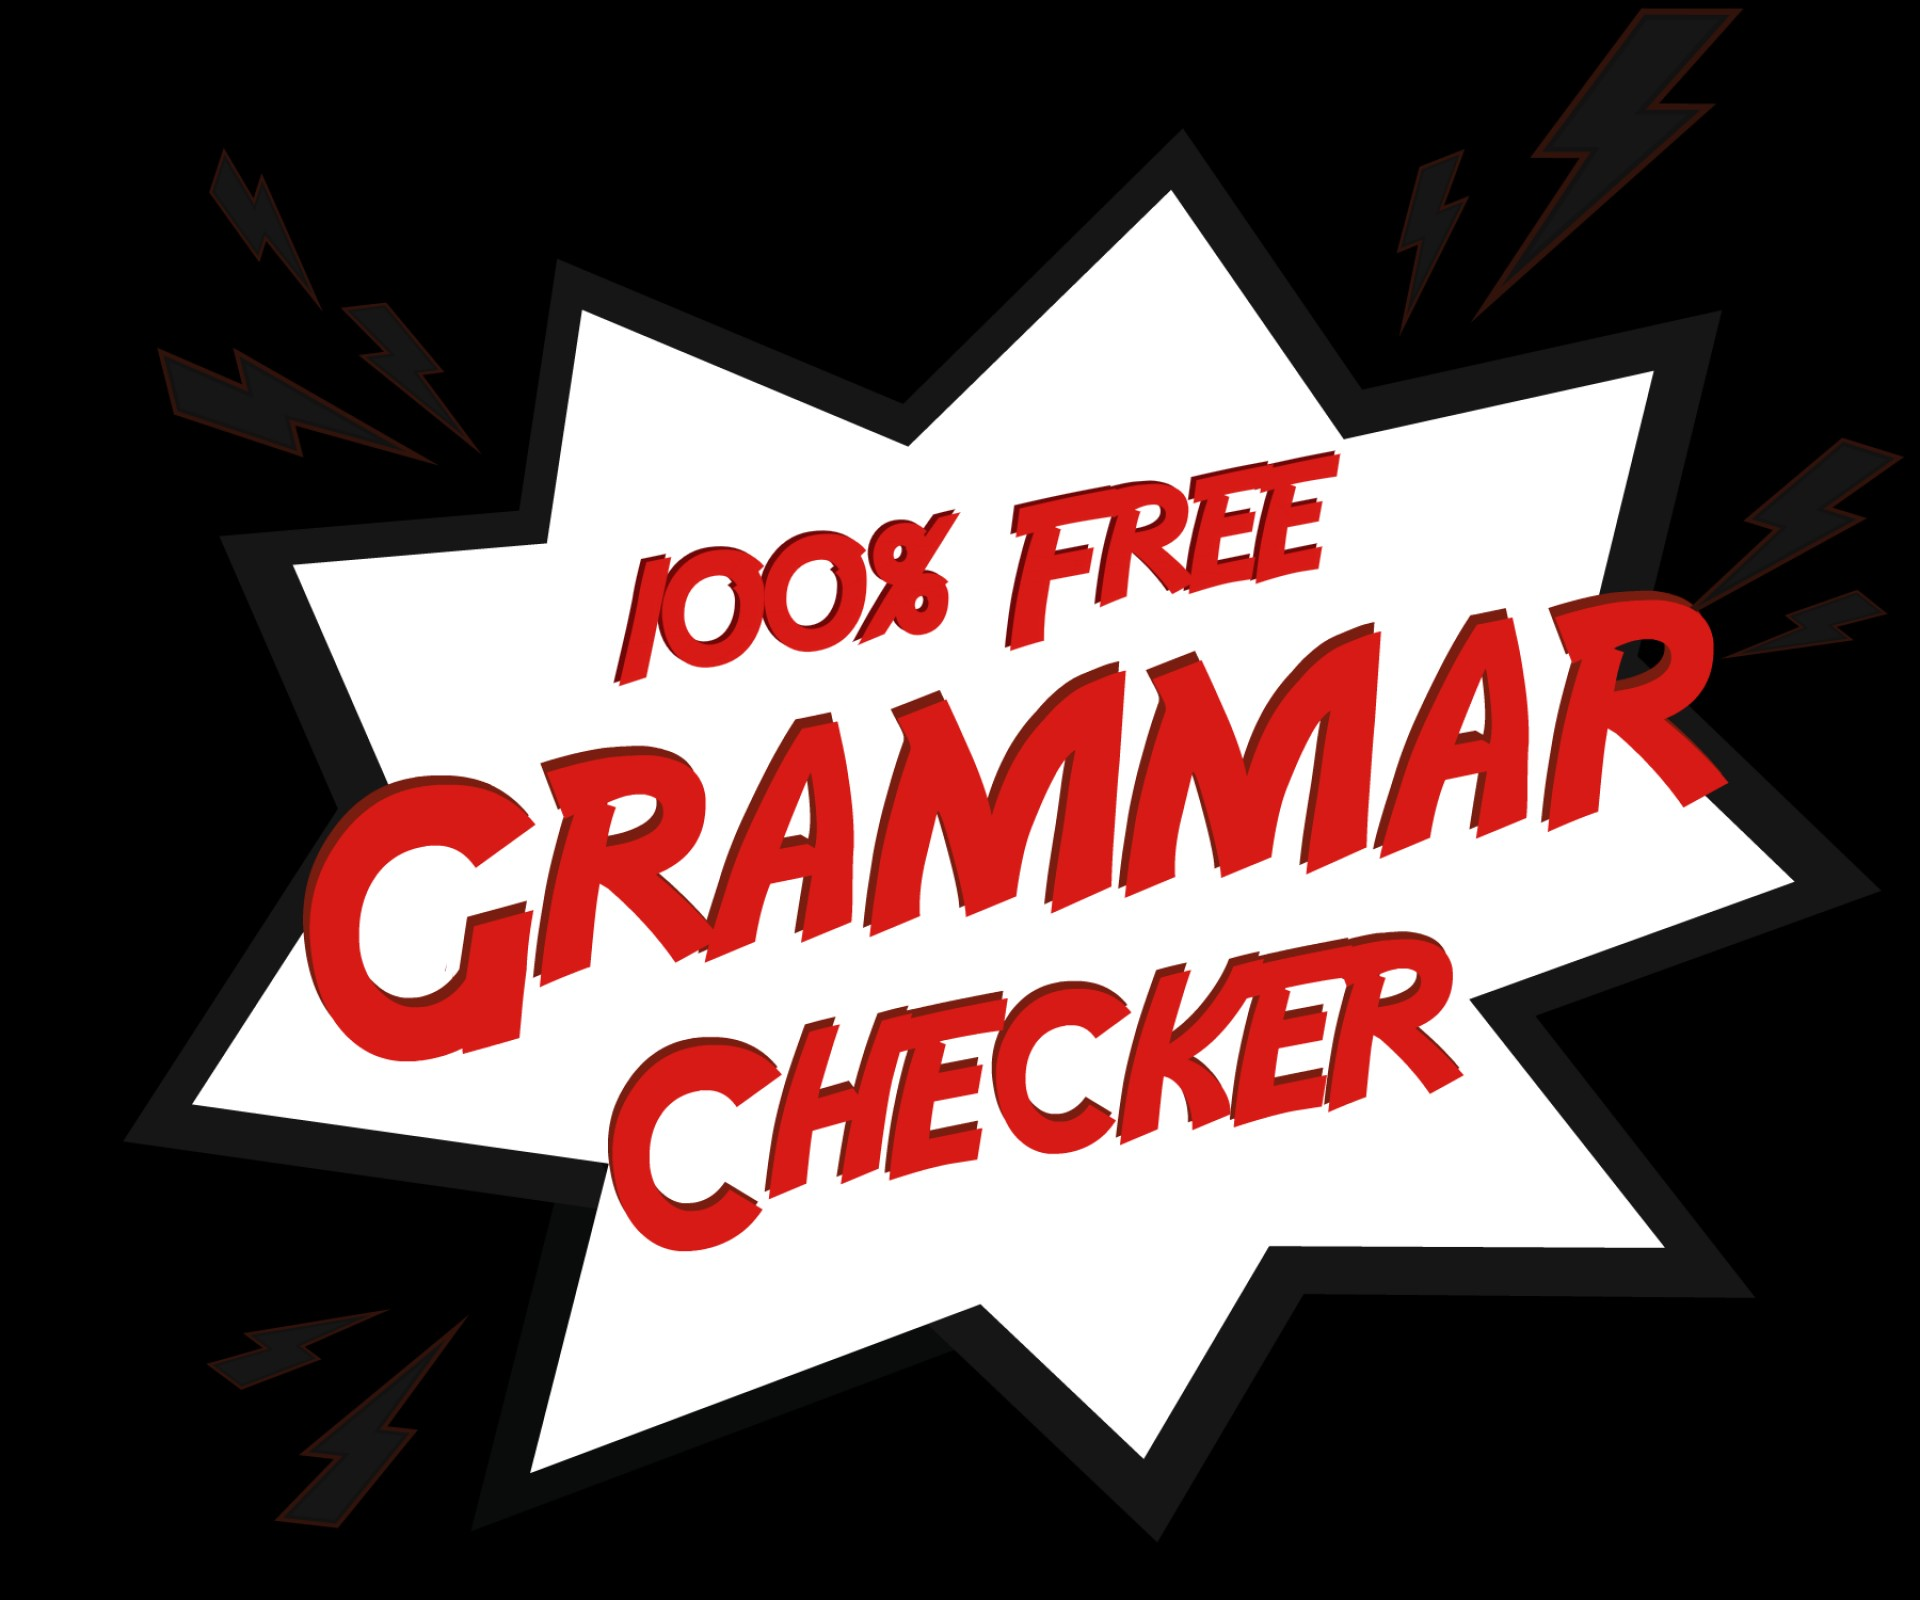 001 Essay Example Freegrammarchecker Free Checker For Incredible Grammar 1920